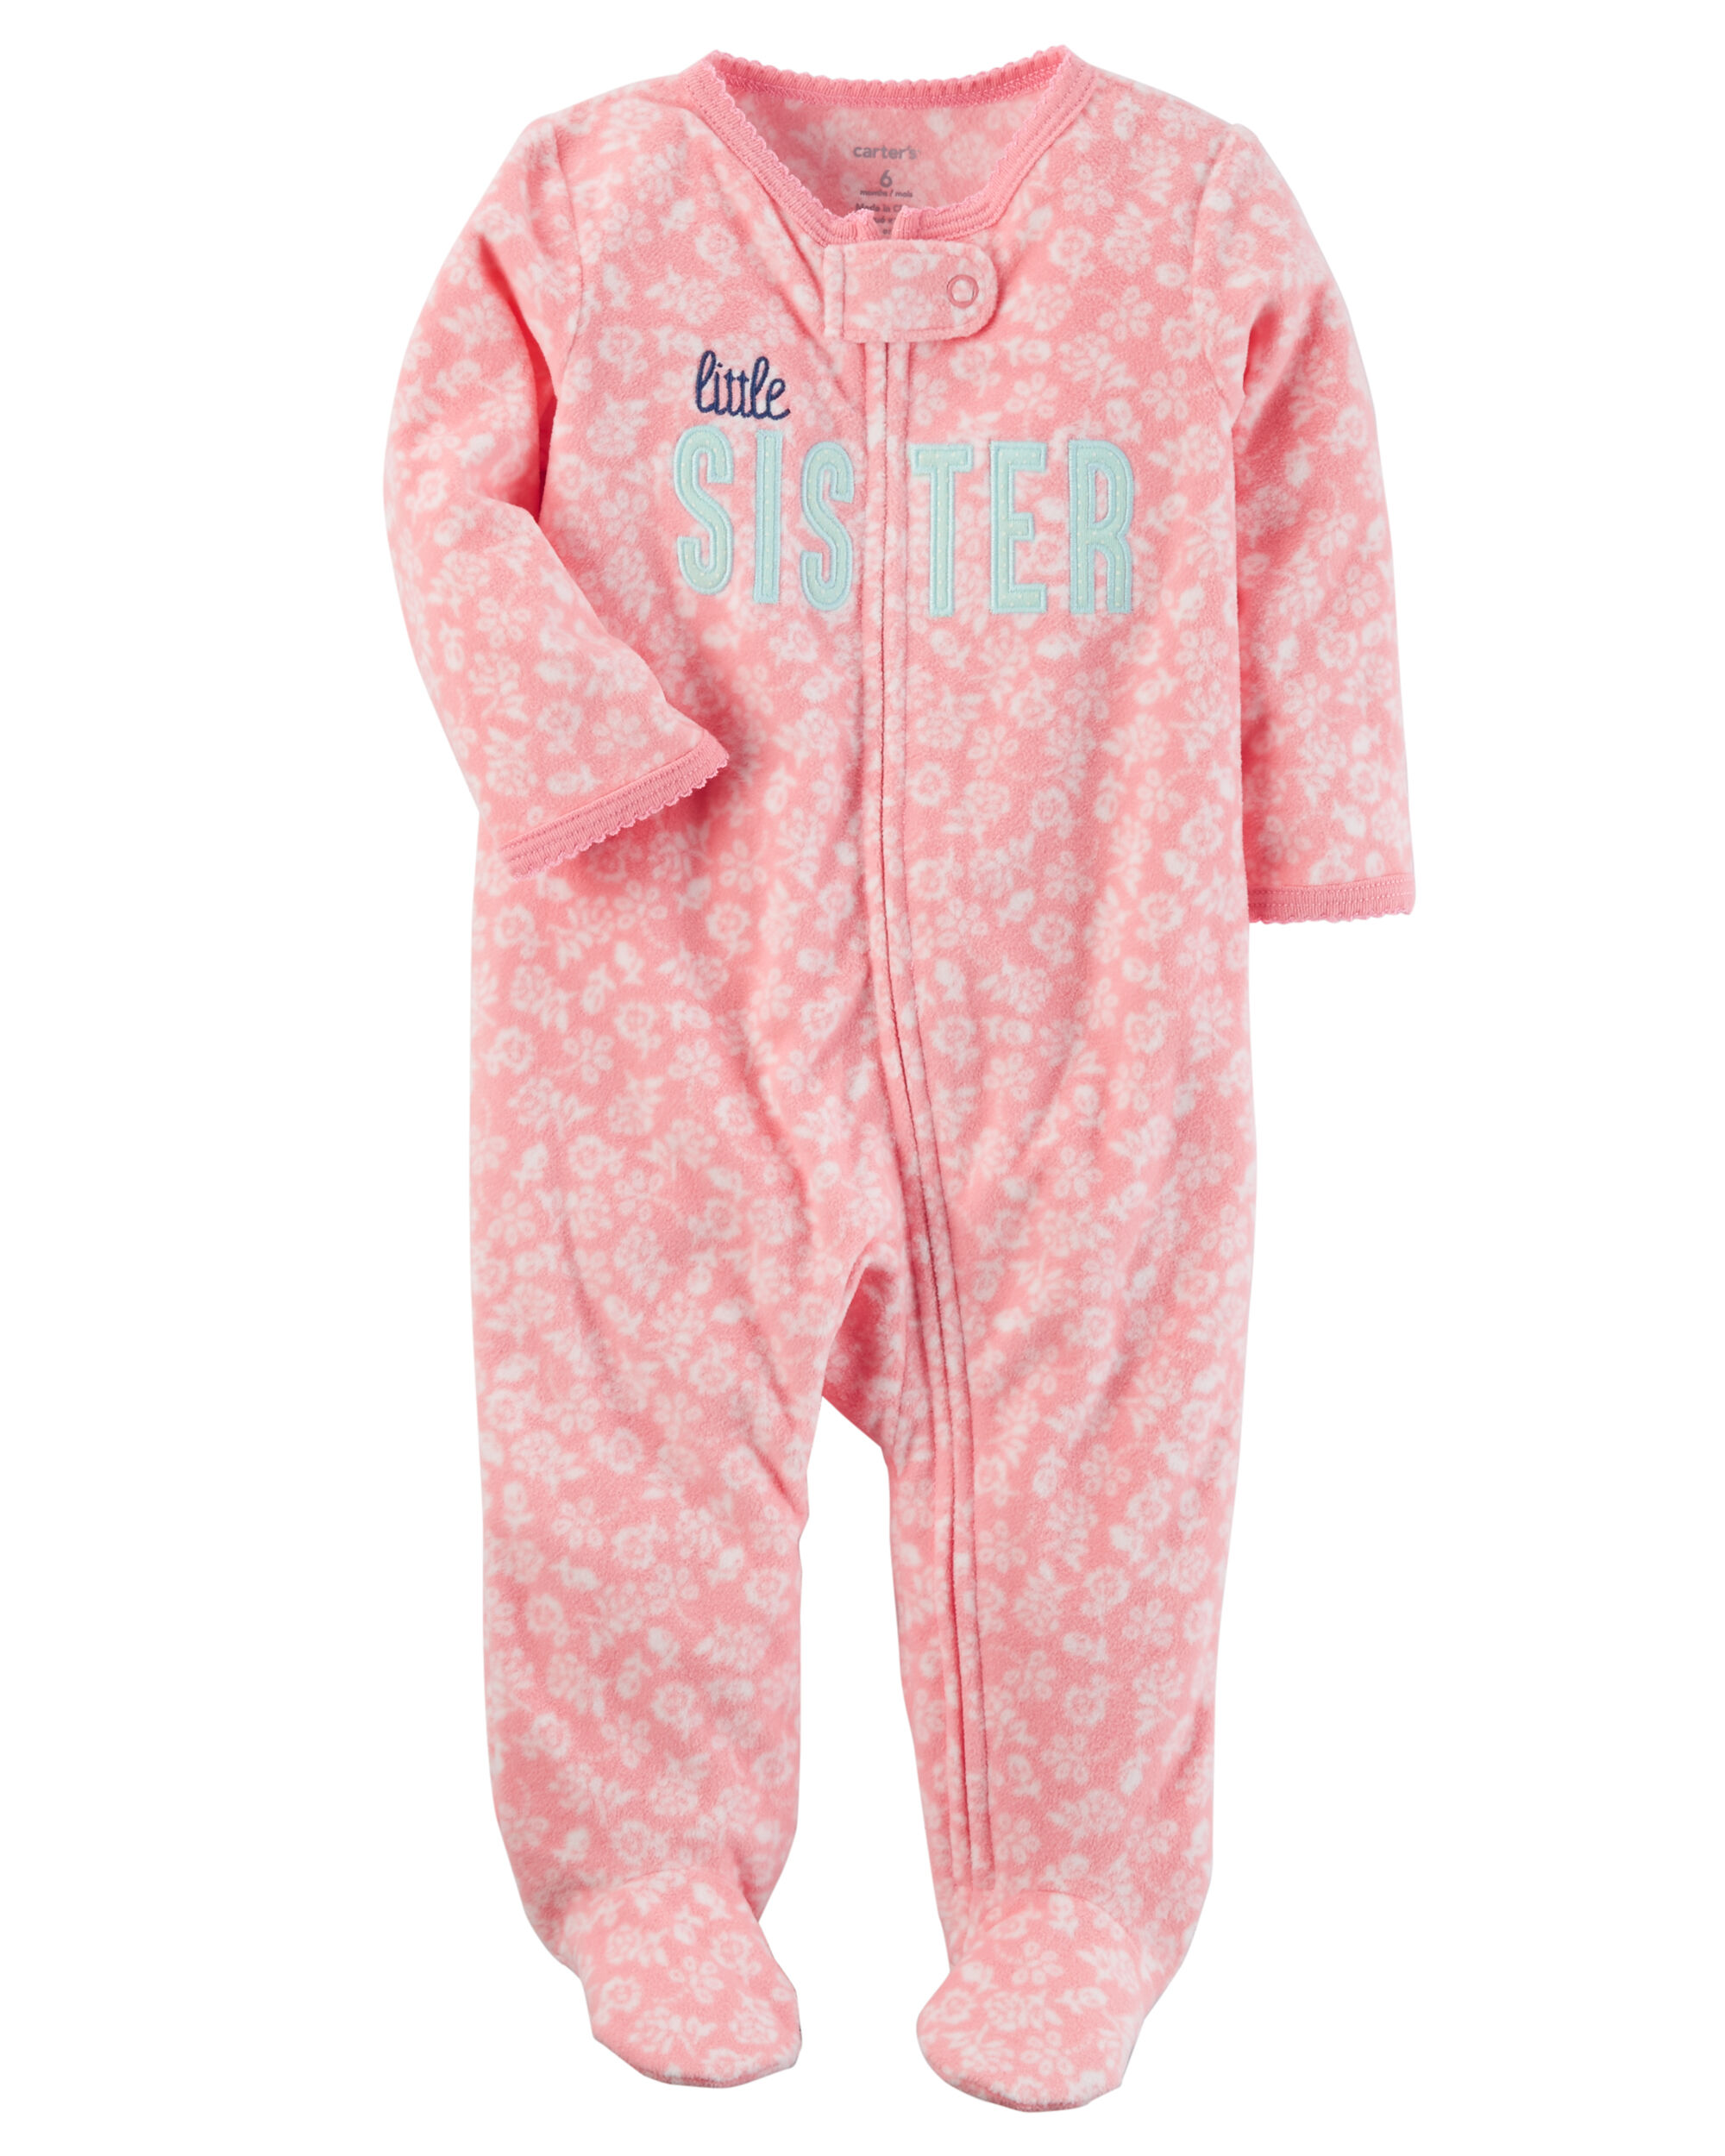 The Children's Place has the widest collection of newborn baby boy sleepwear & pajamas. Shop at the PLACE where big fashion meets little prices!